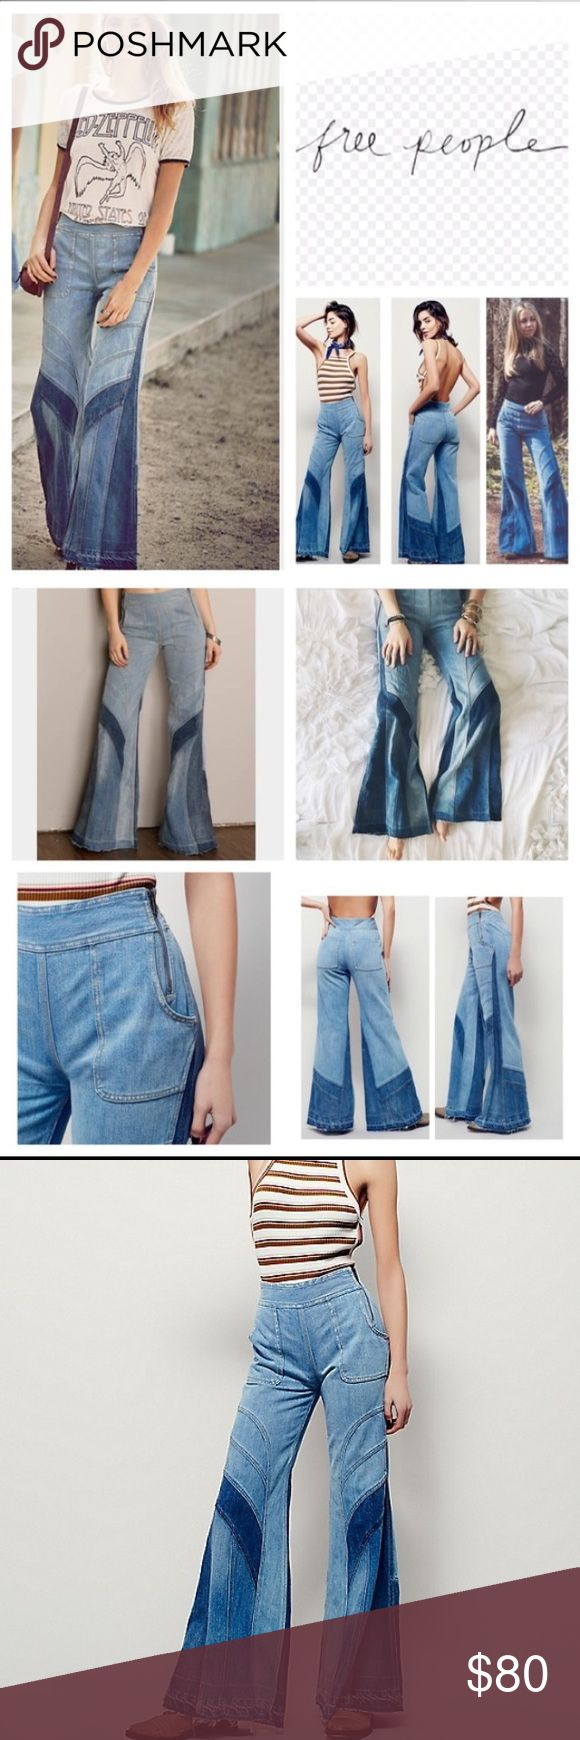 FREE PEOPLE TIDAL WAVE BELL BOTTOM SZ 24 Free people tidal wave bell bottom jeans features high waist, set on pockets and side zippers Free People Jeans Flare & Wide Leg